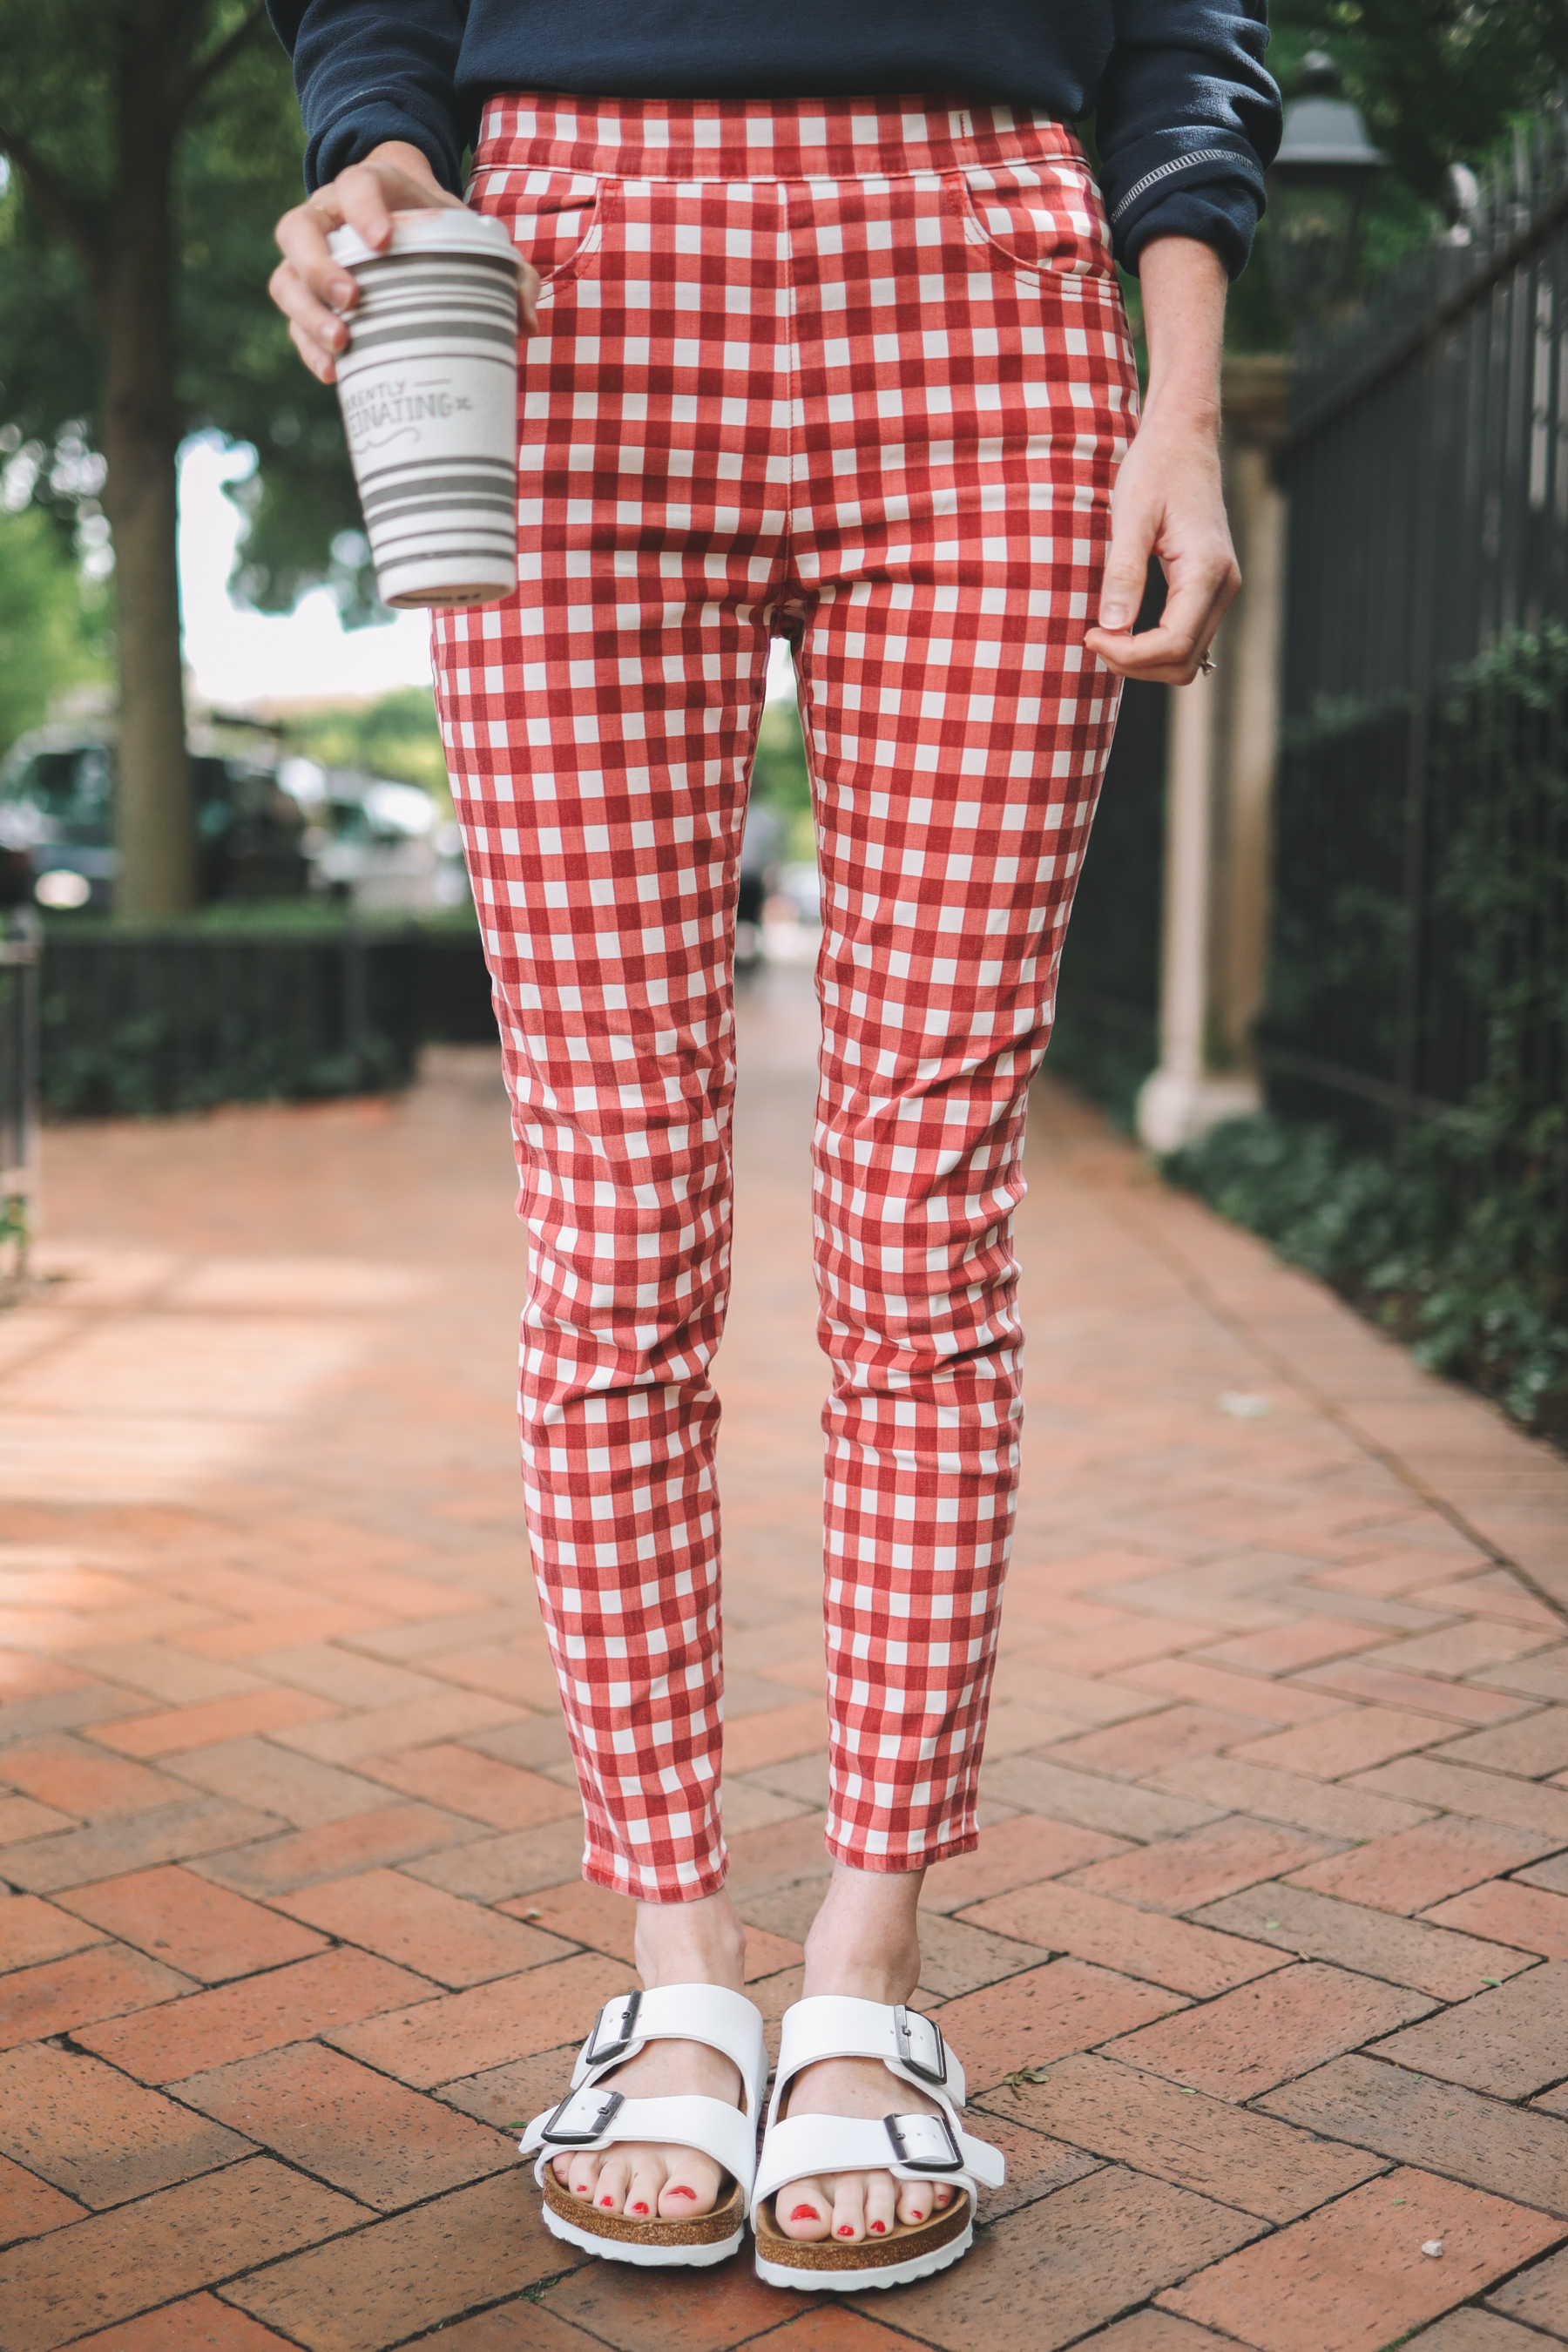 Gingham jeans